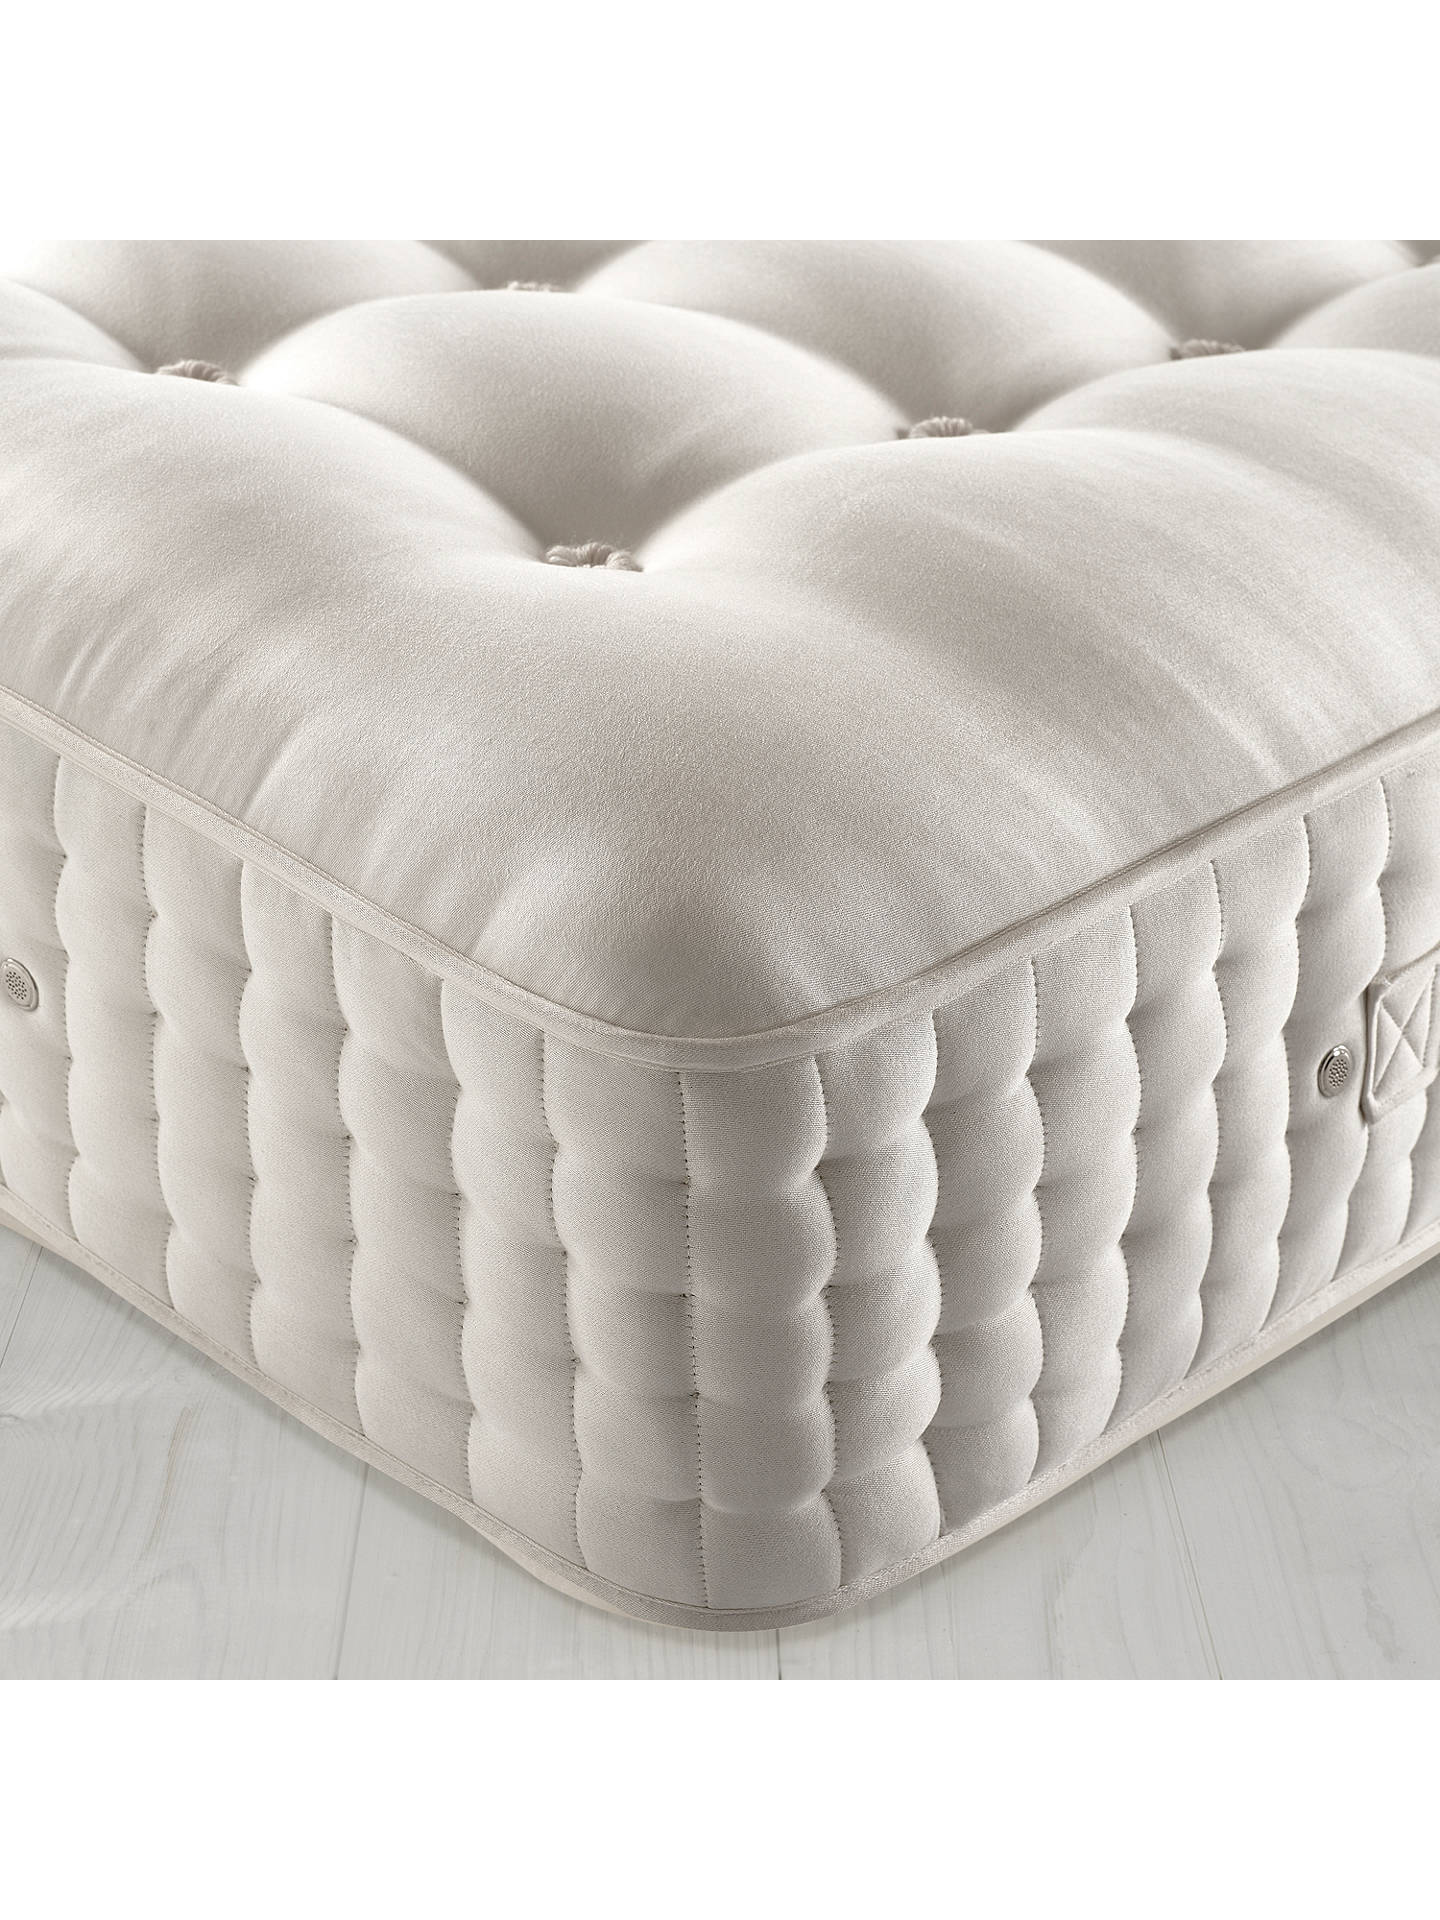 BuyJohn Lewis & Partners The Ultimate Collection Goat Angora Pocket Spring Mattress, Medium, Double Online at johnlewis.com